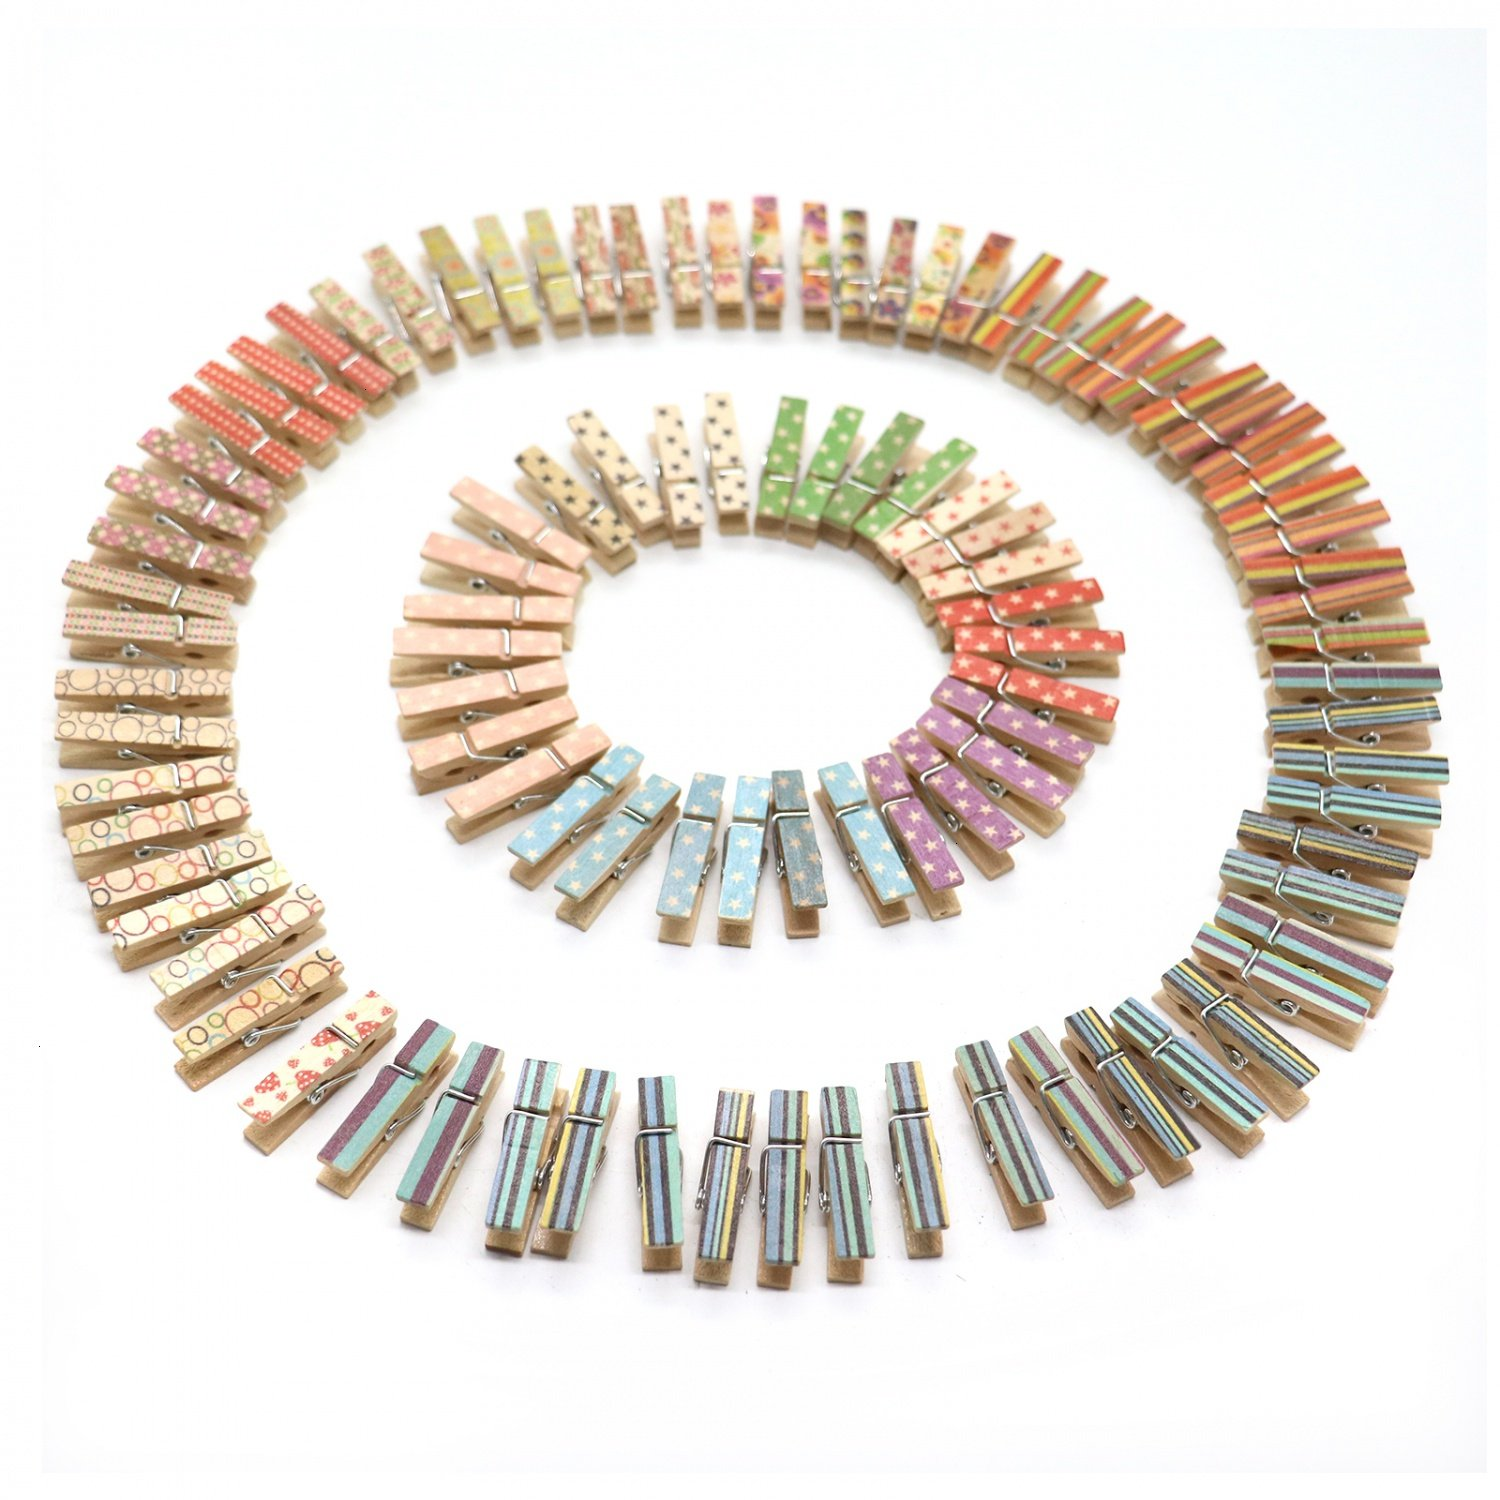 HUELE 100 Pieces Wooden Clothespin Colorful Painted Wood Mini Clothespin for Photo Clips,Hanging Small Clothing